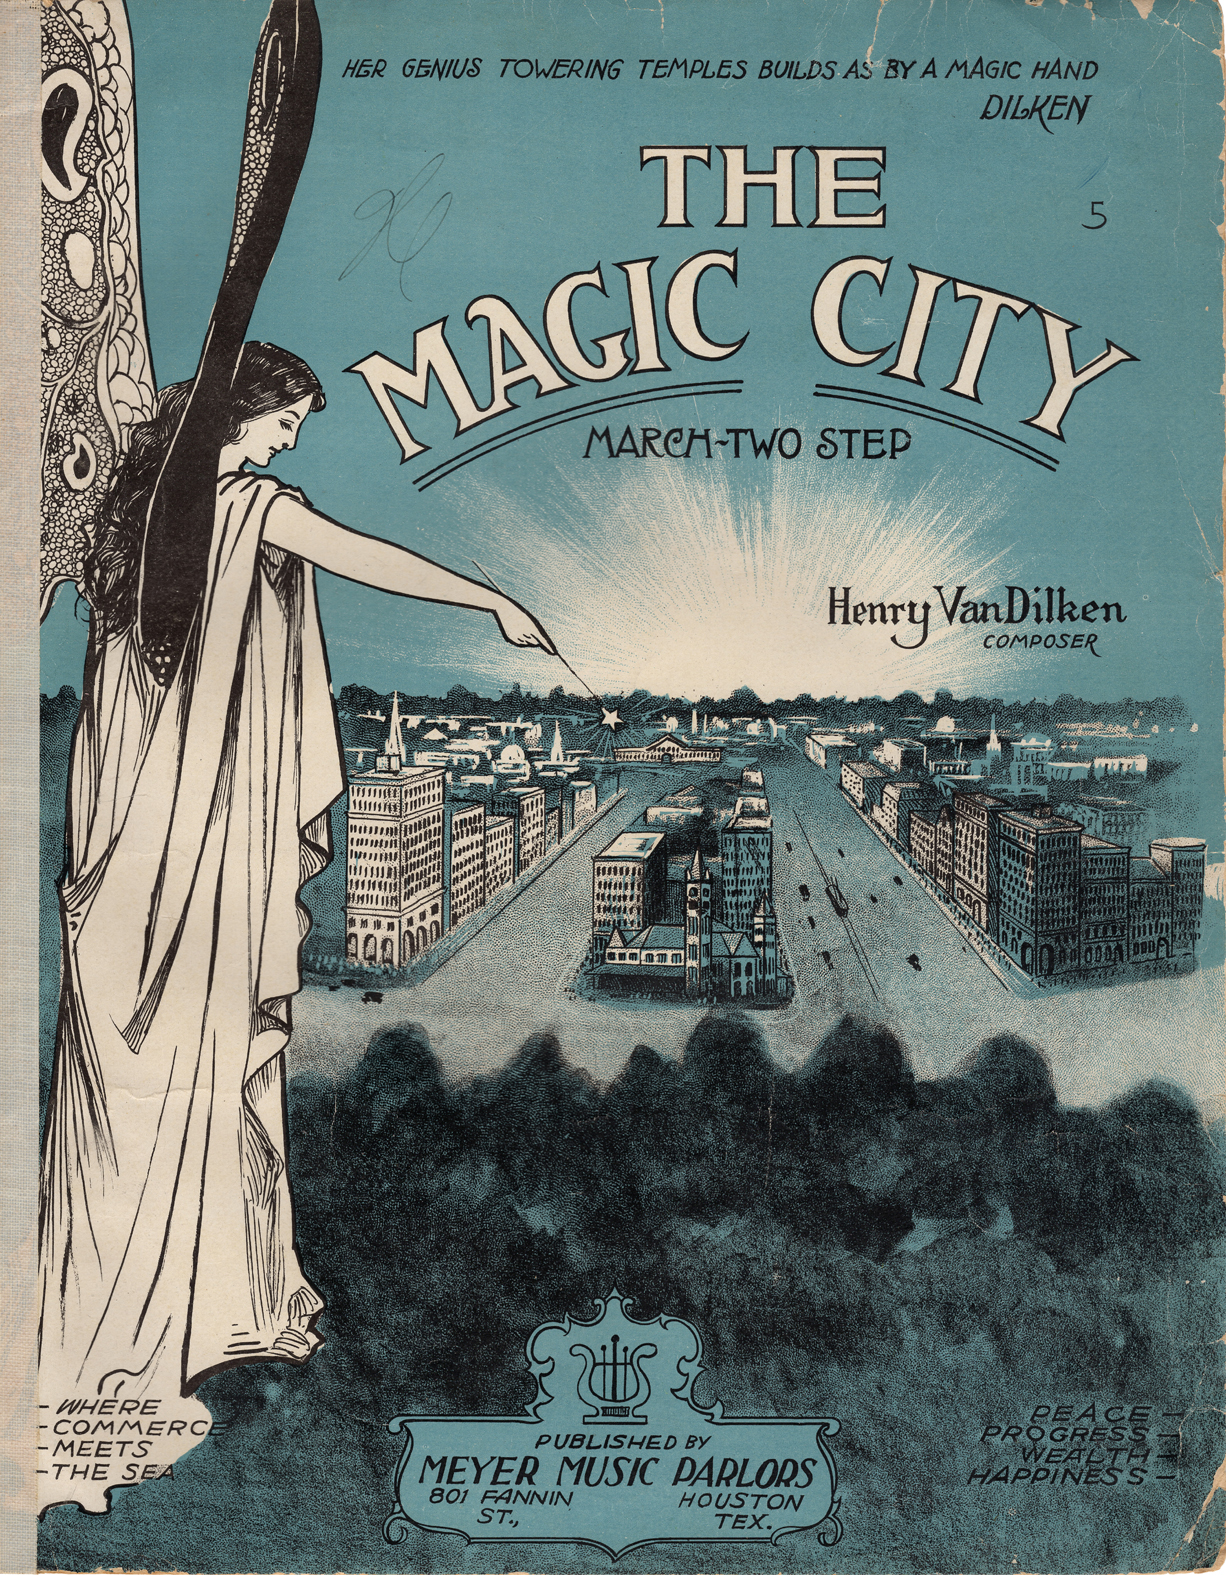 Song of magic city